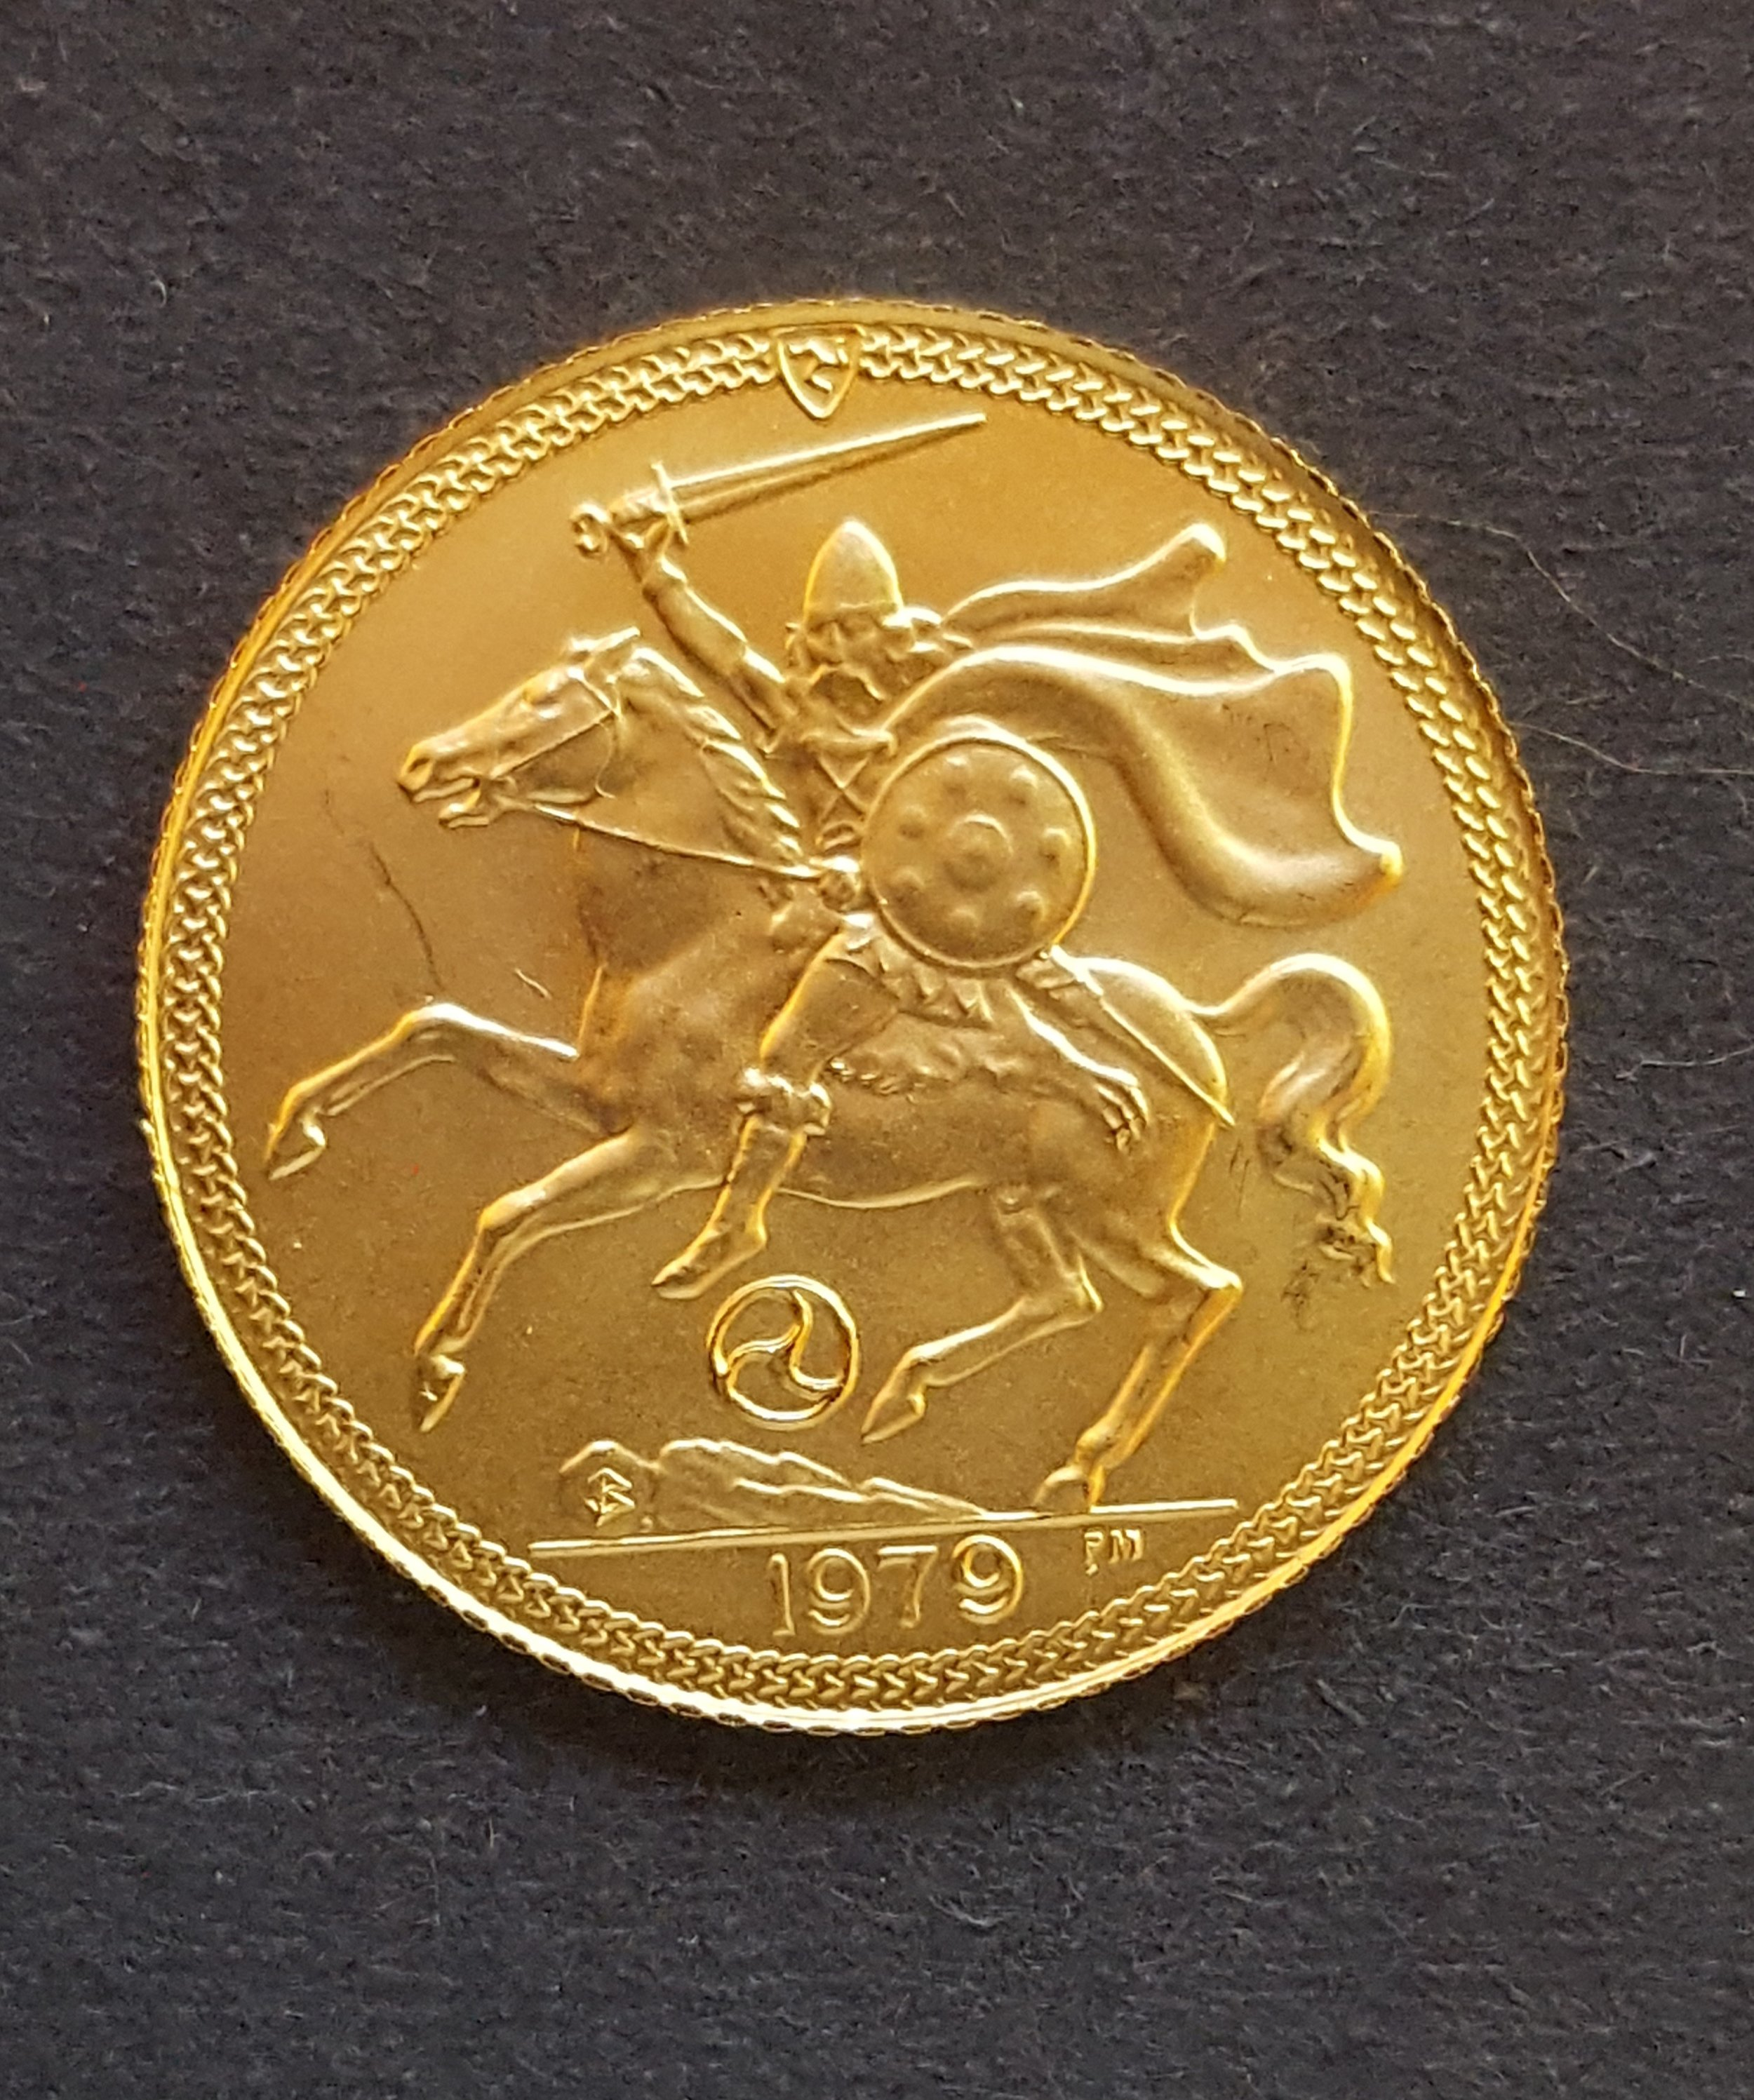 Isle of Man Half Sovereign 1979.